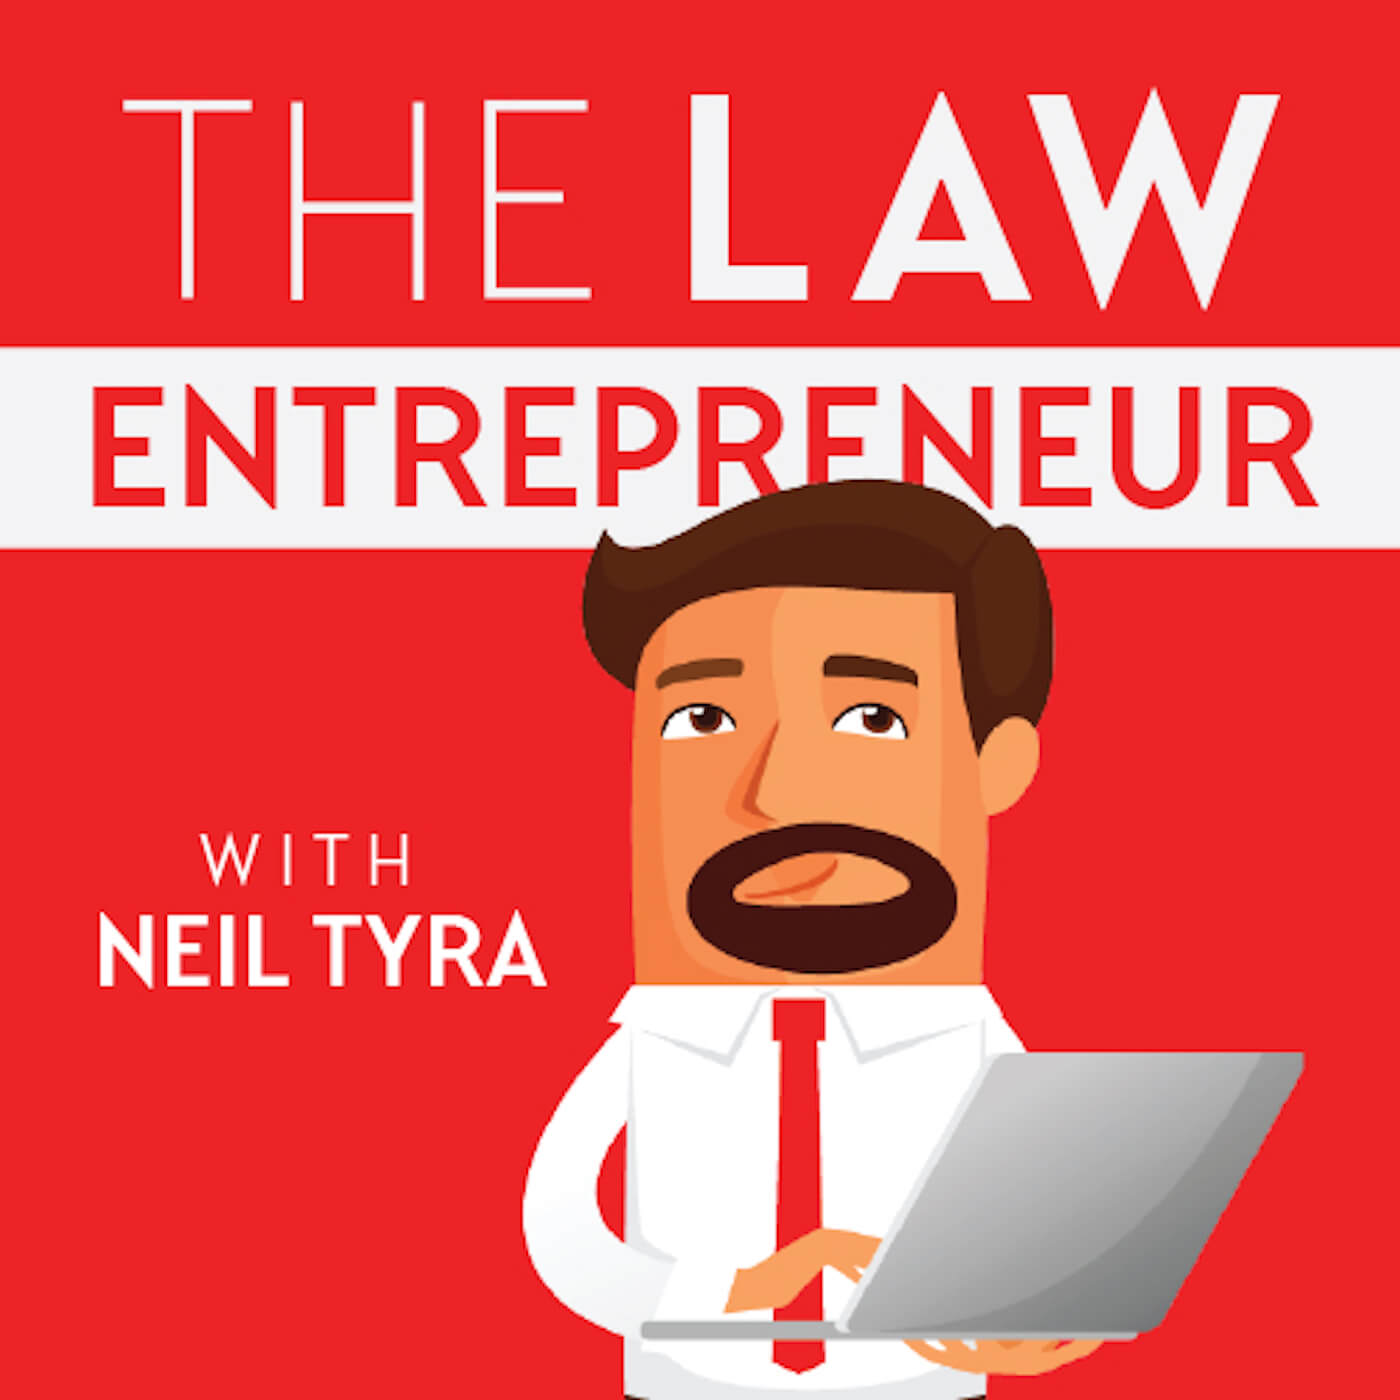 The Law Entrepreneur book cover